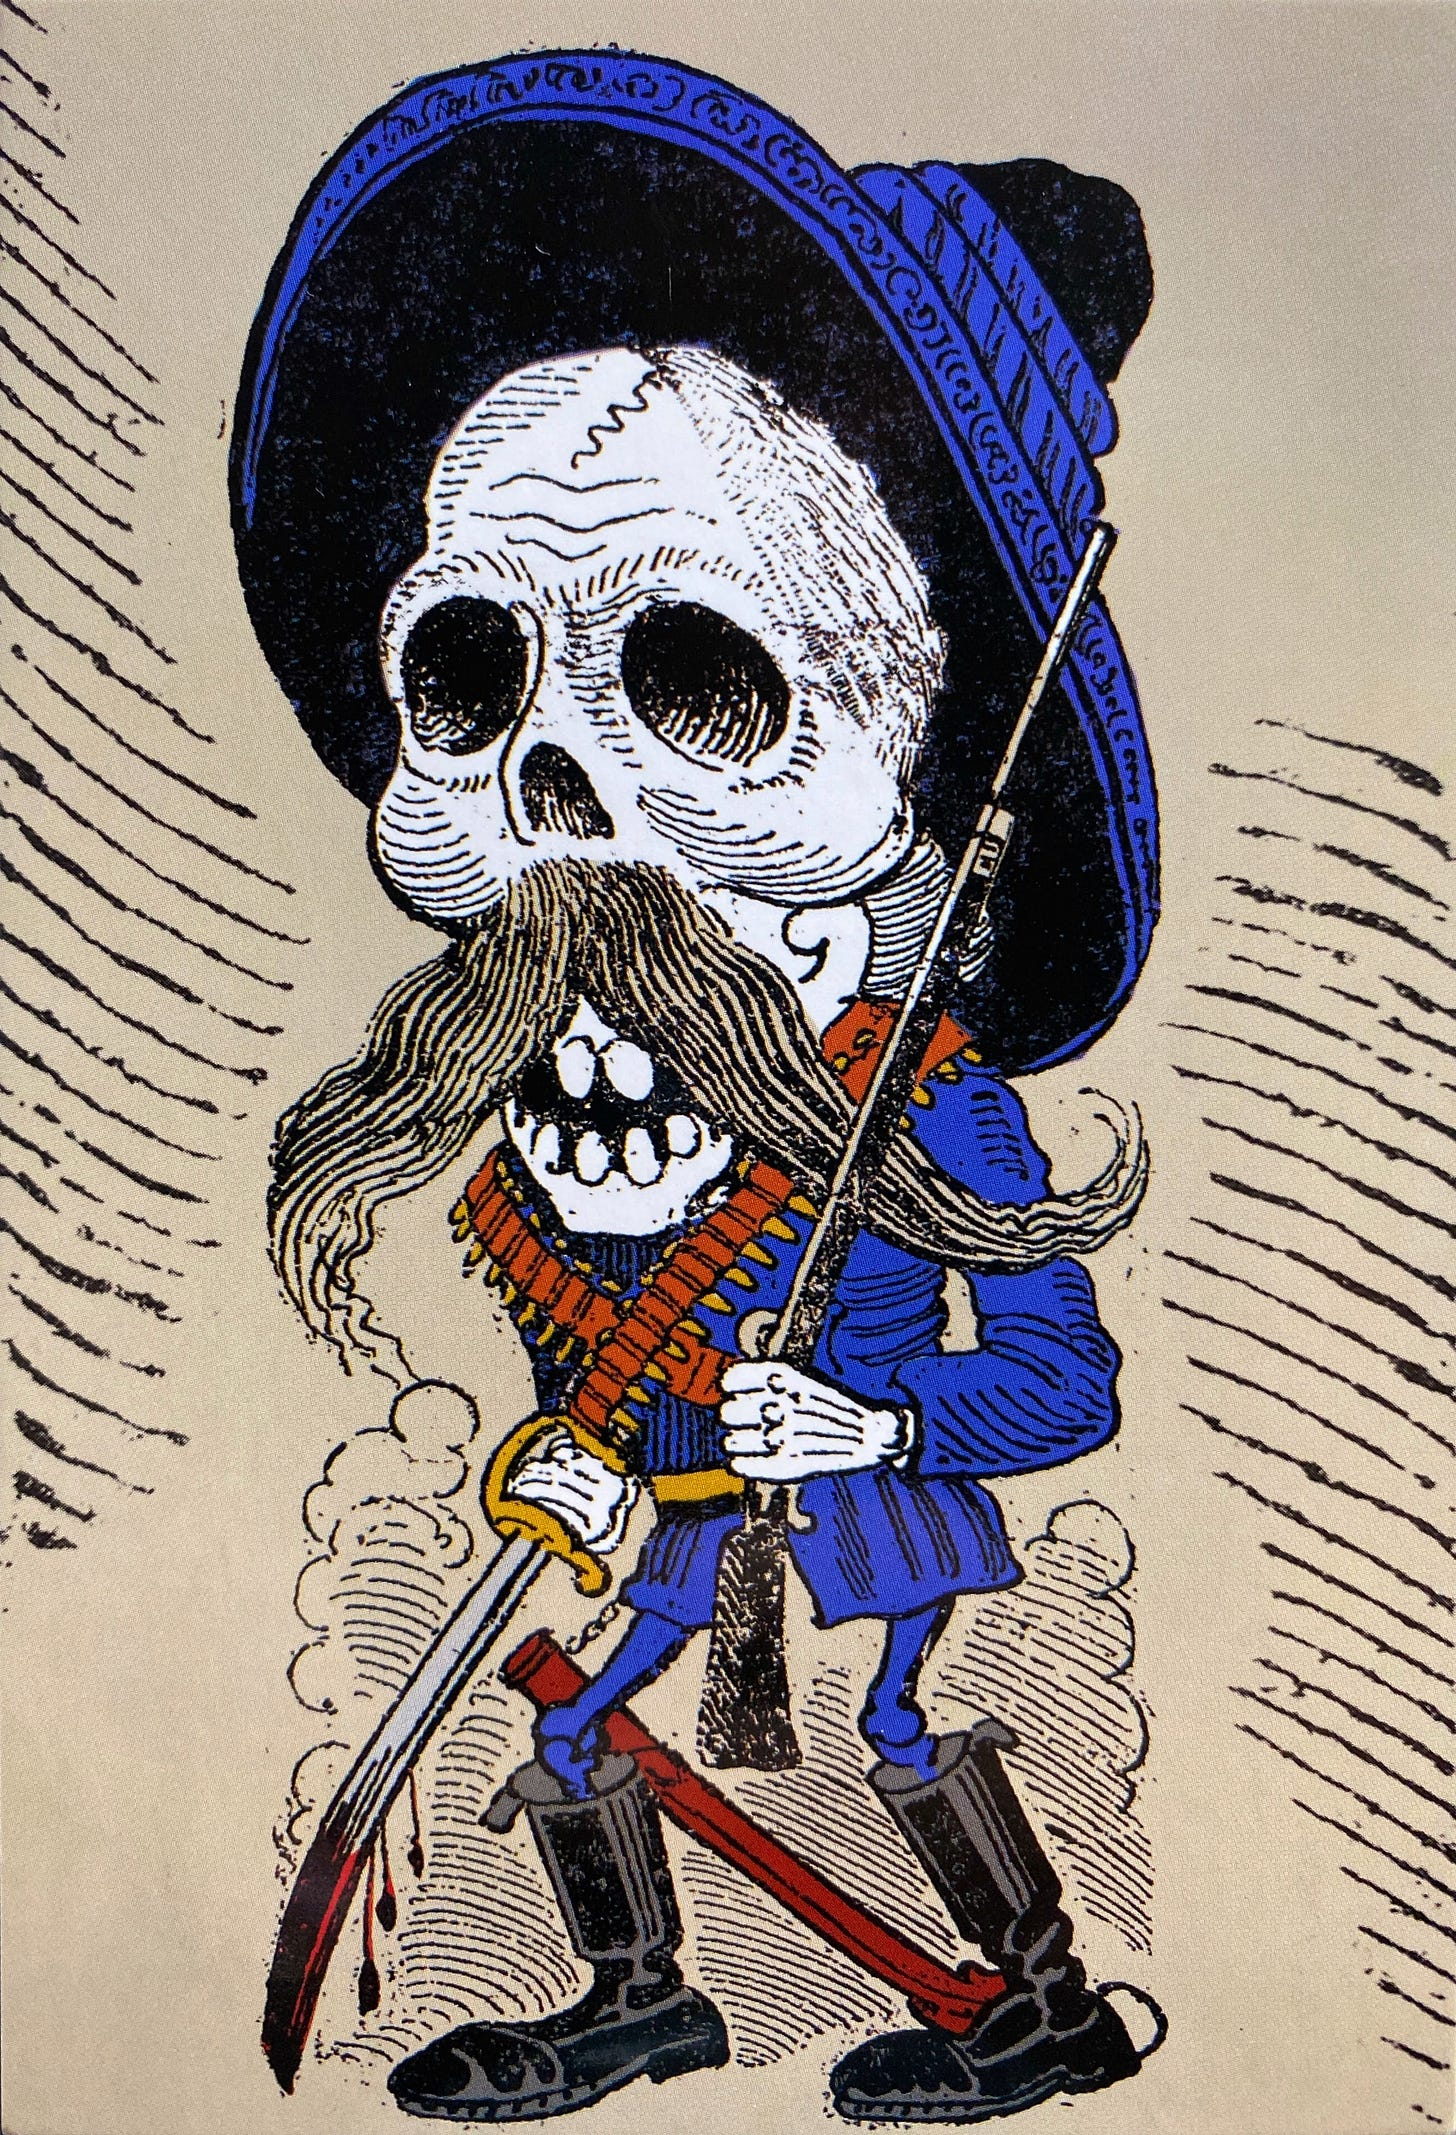 A depiction of Emiliano Zapata, Mexican caudillo, as a skeleton. It has the iconic hat of the revolutionary era, while carrying a sword with blood in his right hand and a musket in his left one.